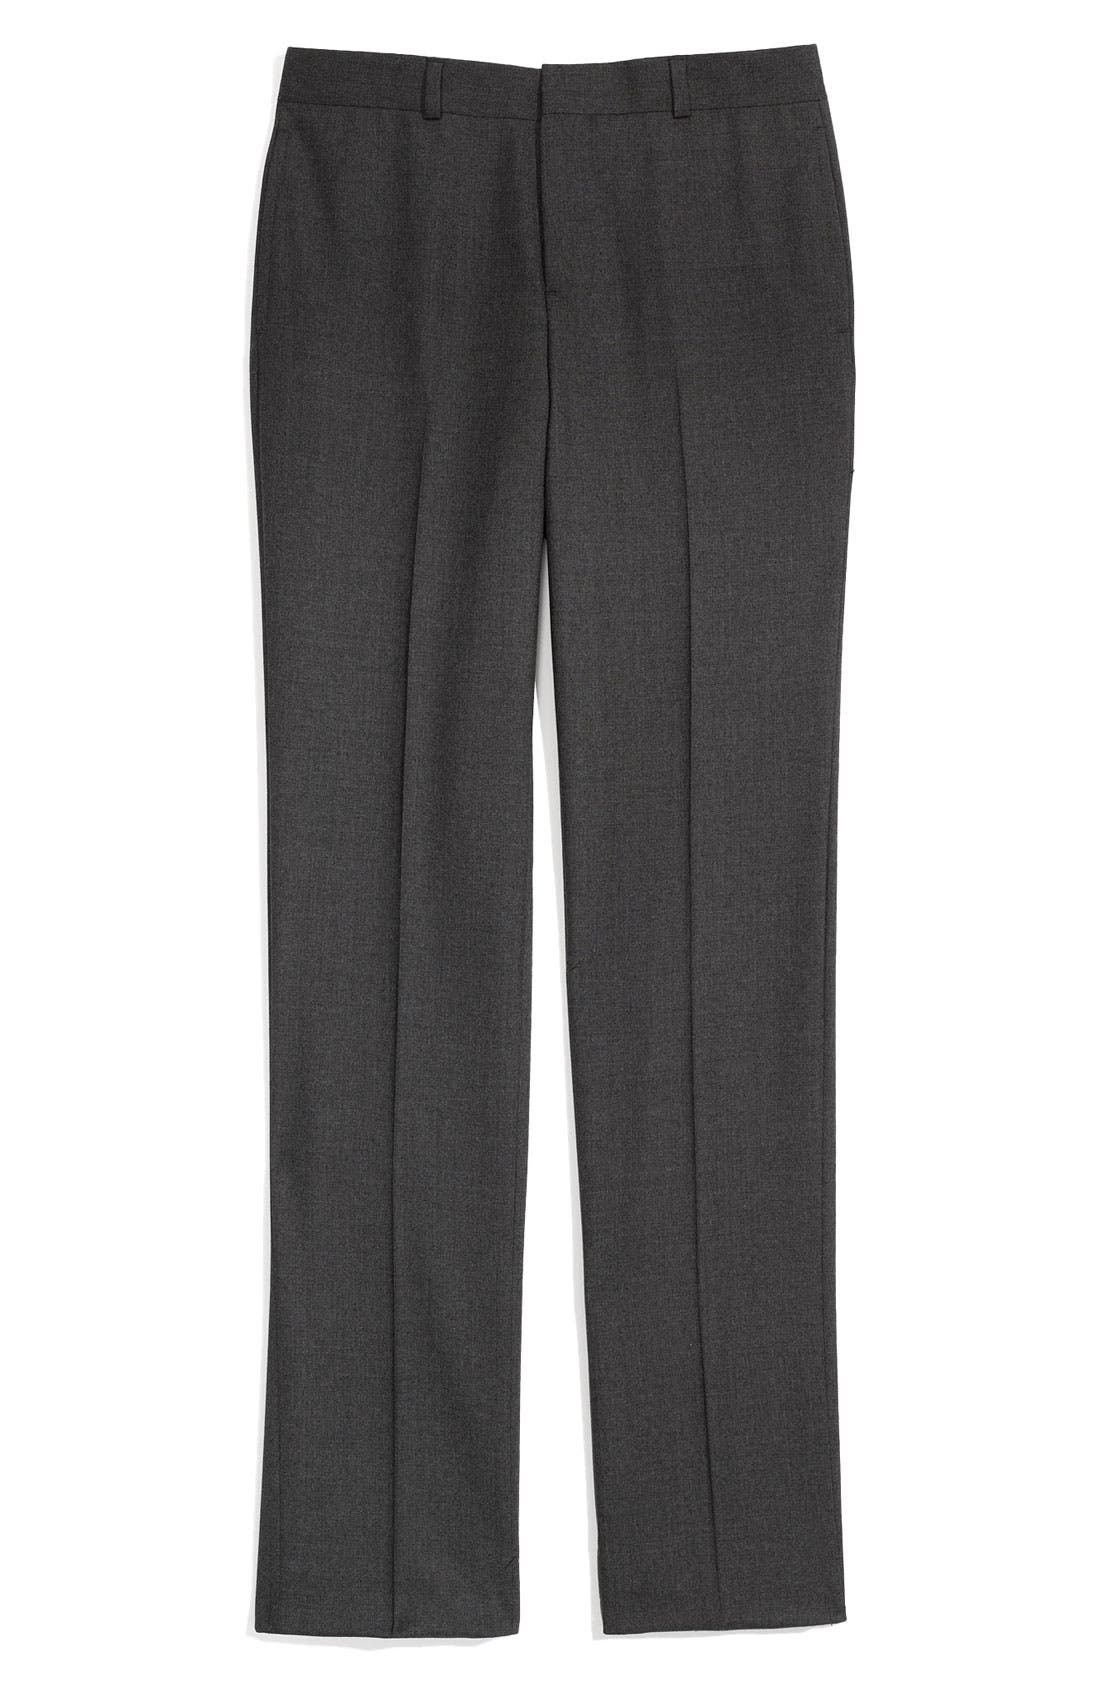 Main Image - Brooks Brothers Flat Front Trousers (Big Boys)